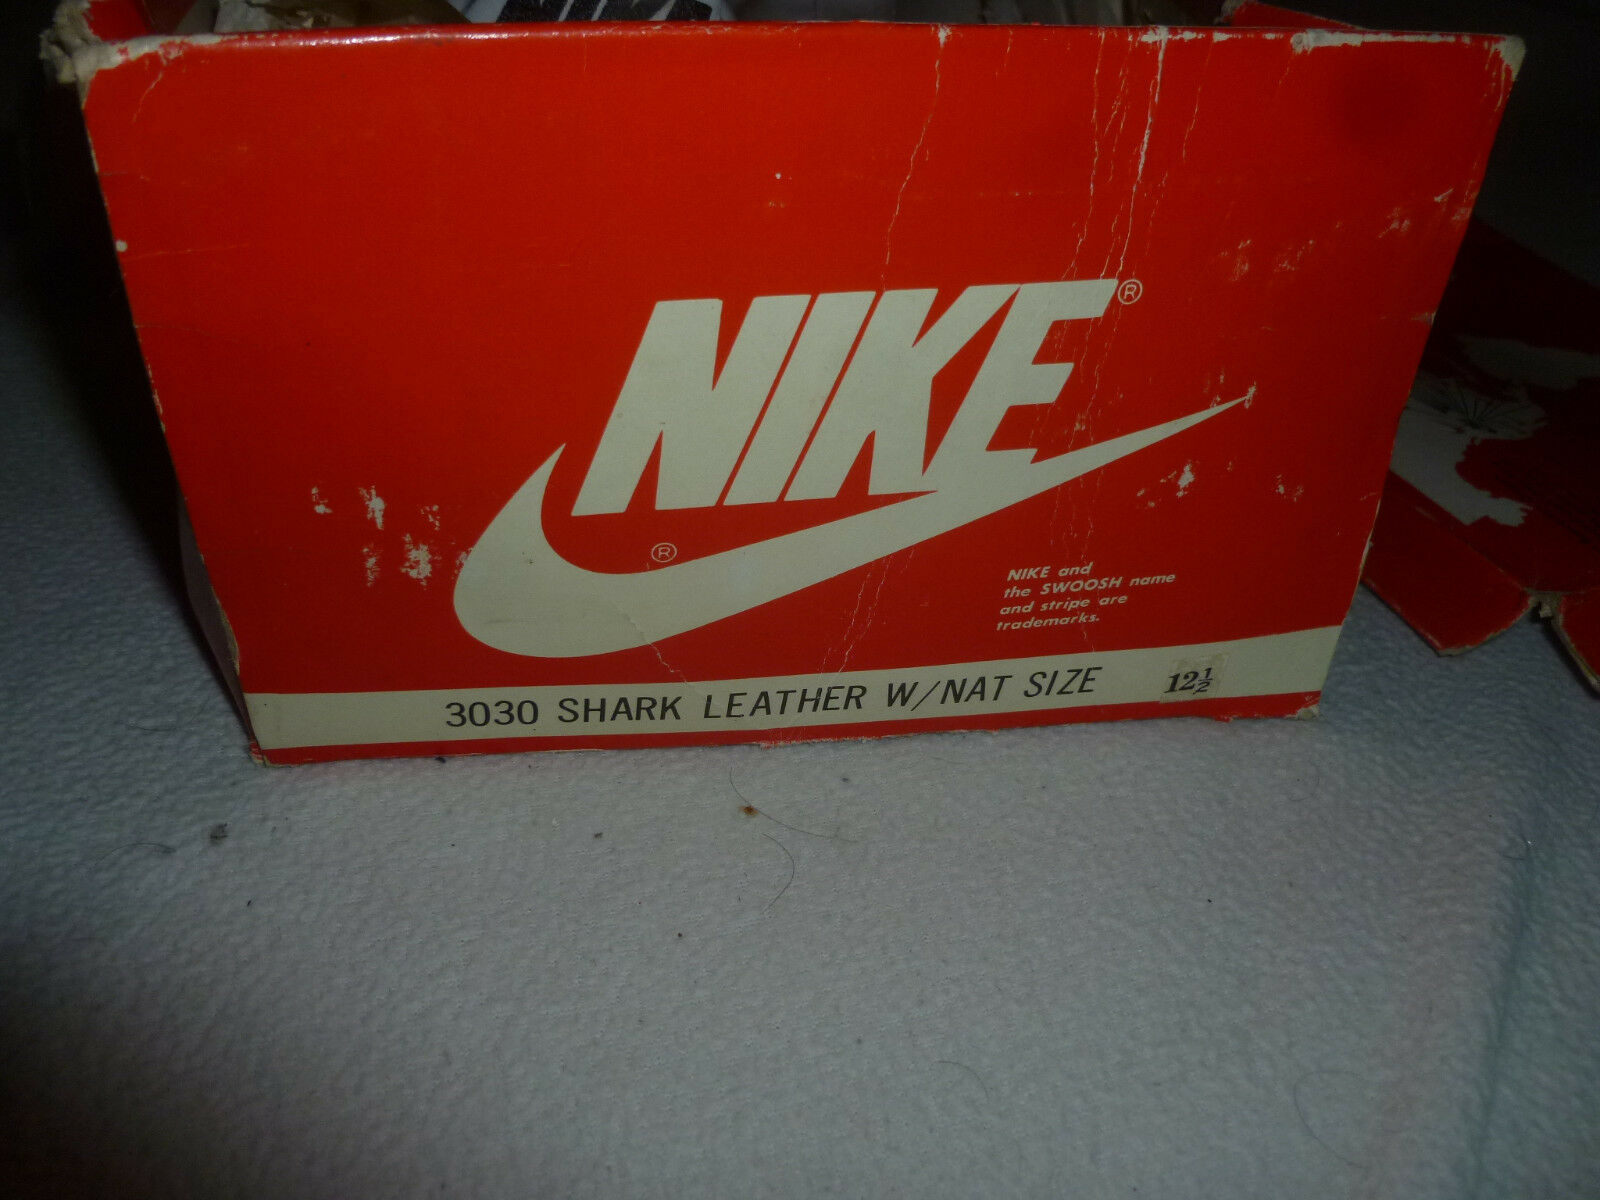 NEW IN BOX VINTAGE 1980S 1980S 1980S NIKE 3030 SHARK LEATHER MENS SHOES CLEATS SIZE 12 1 2   1bec24